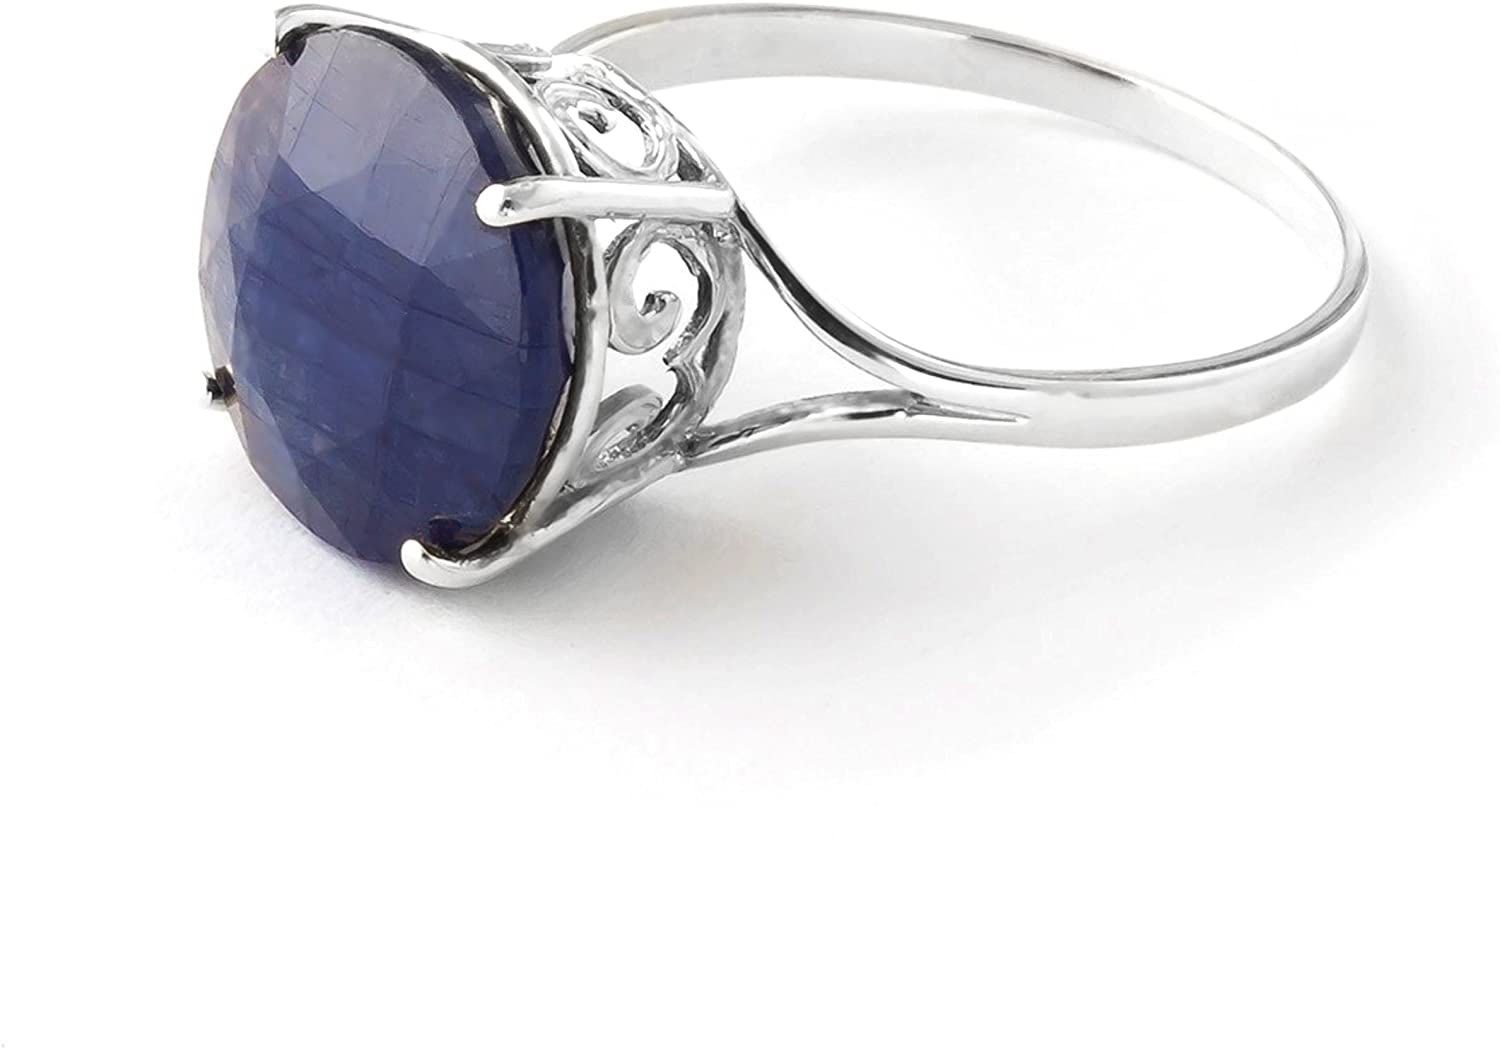 Galaxy Gold 9.5 Carat 925 Sterling Silver Ring with Natural 12.0 MM Round Blue Sapphire (5.5)